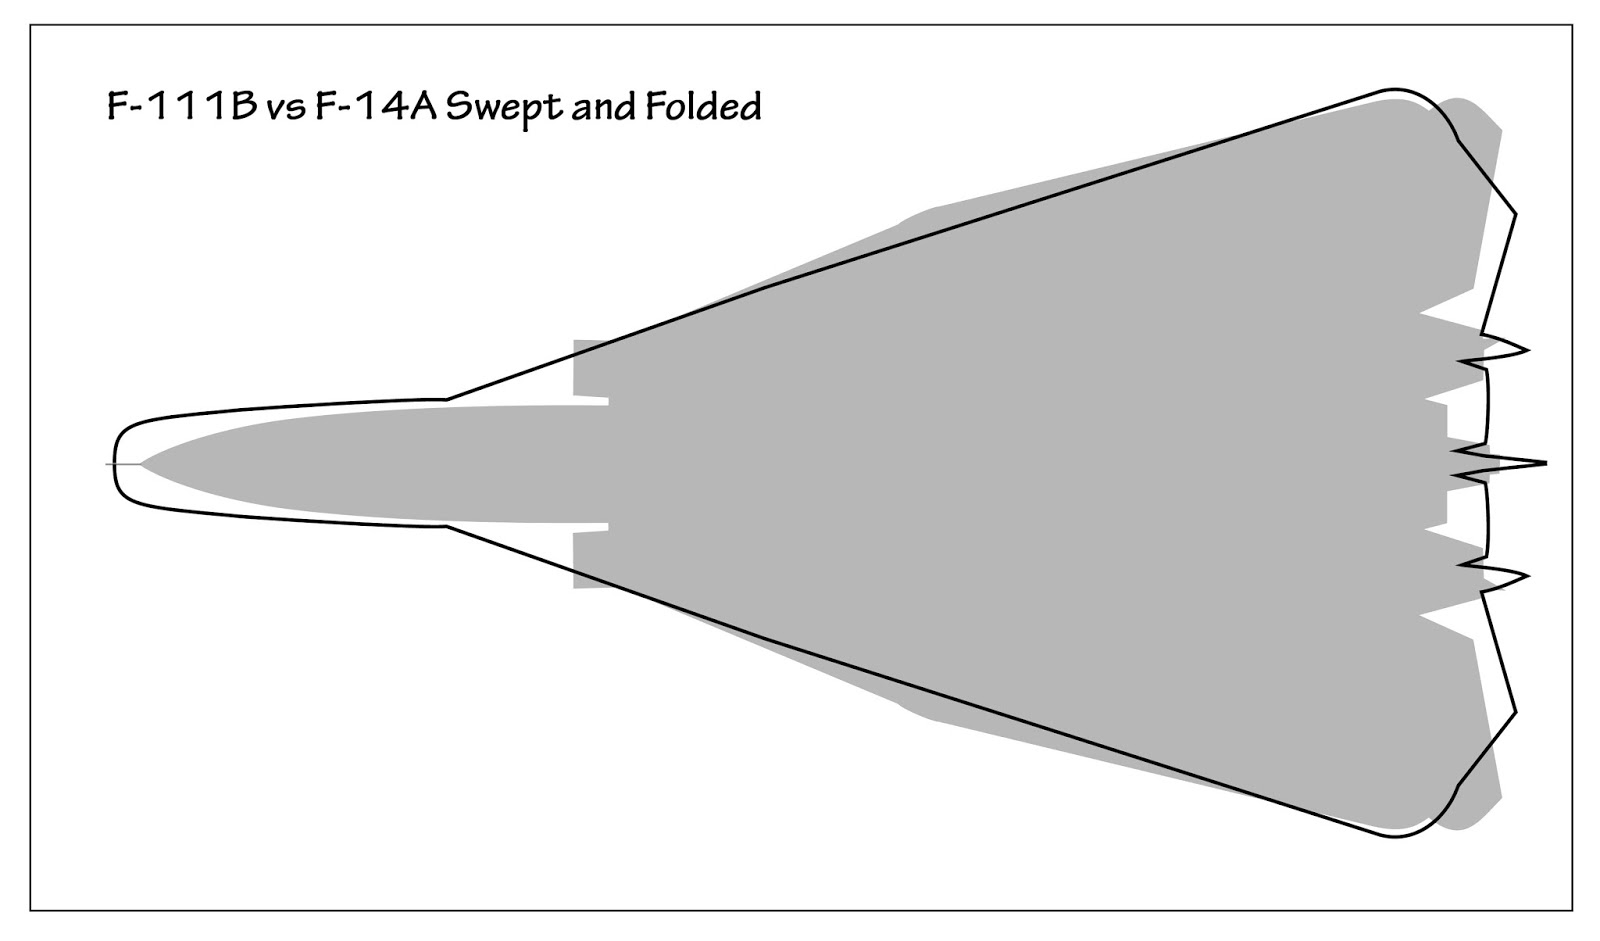 small resolution of  full disclosure the f 111b s nose is folded upward as it was designed to be for parking on a carrier deck